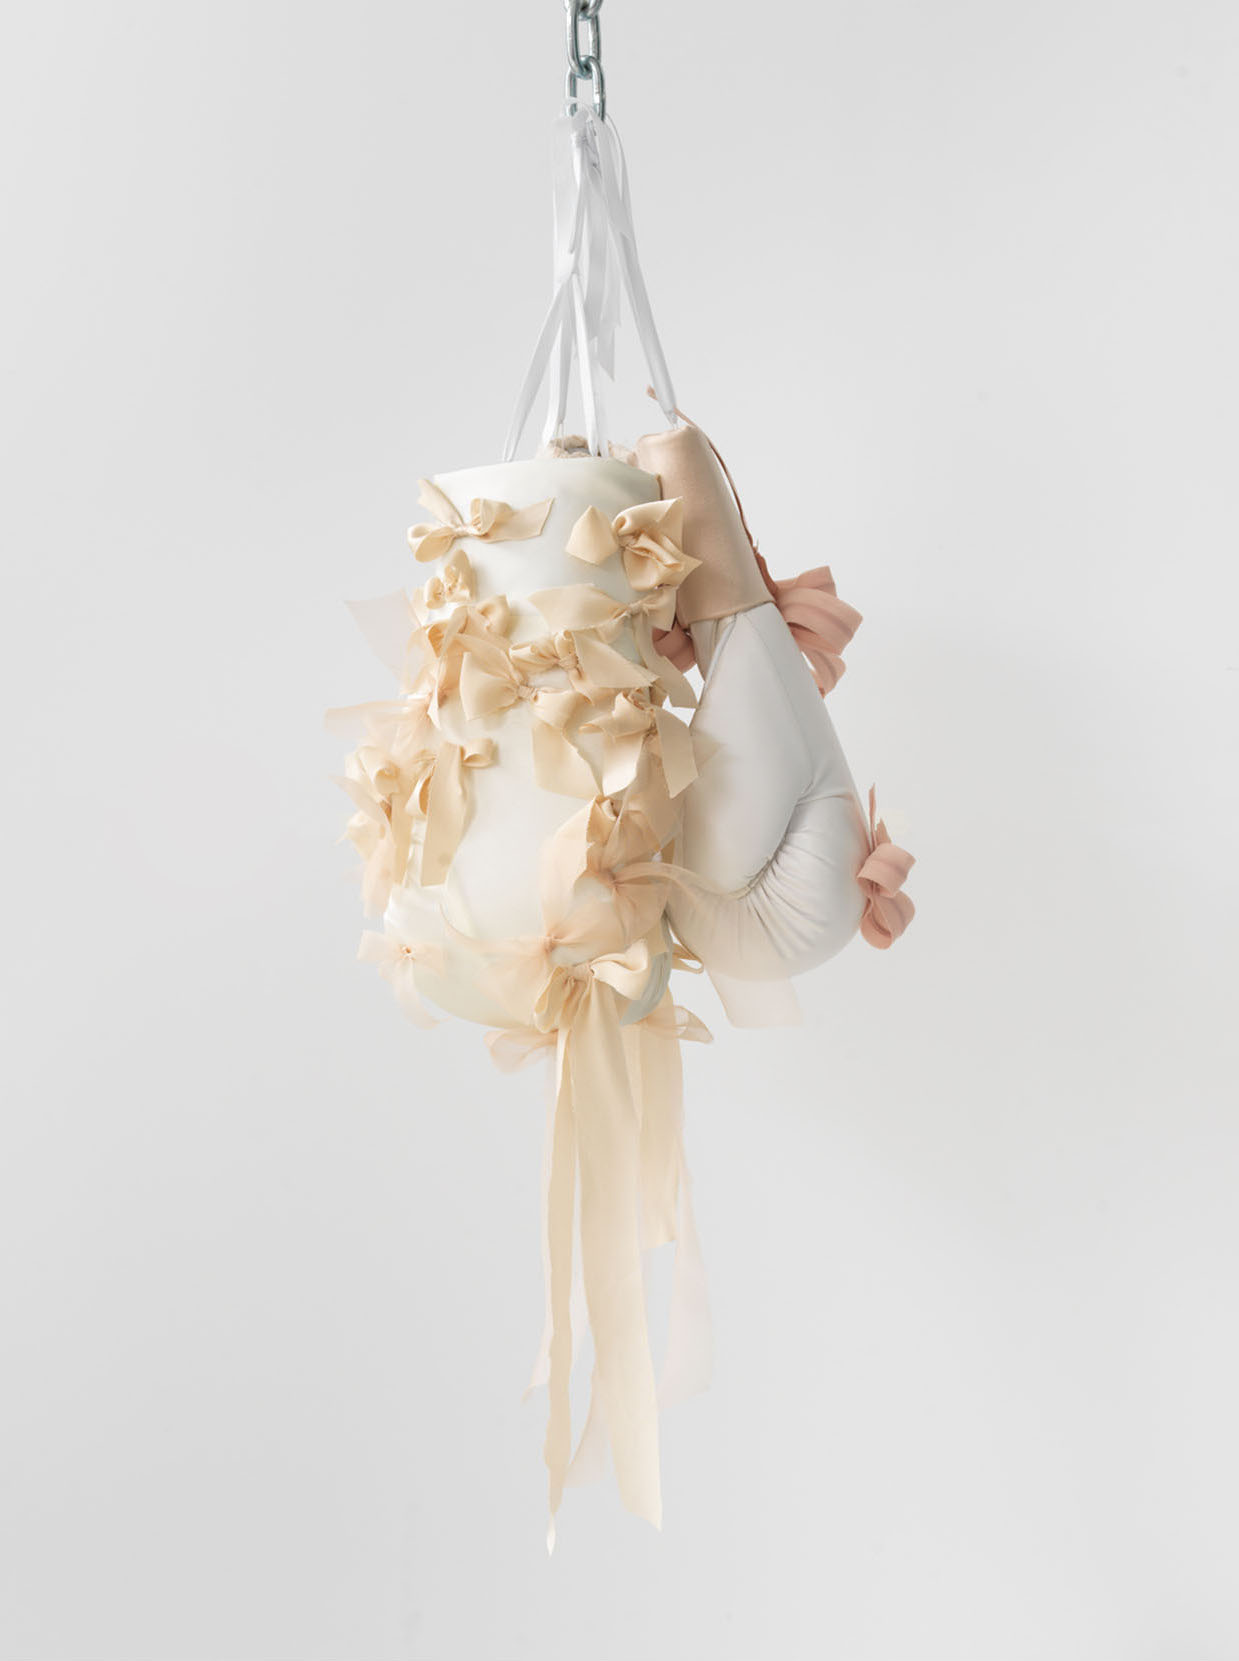 Zoe Buckman Morning Rose Wedding Dress Boxing Gloves